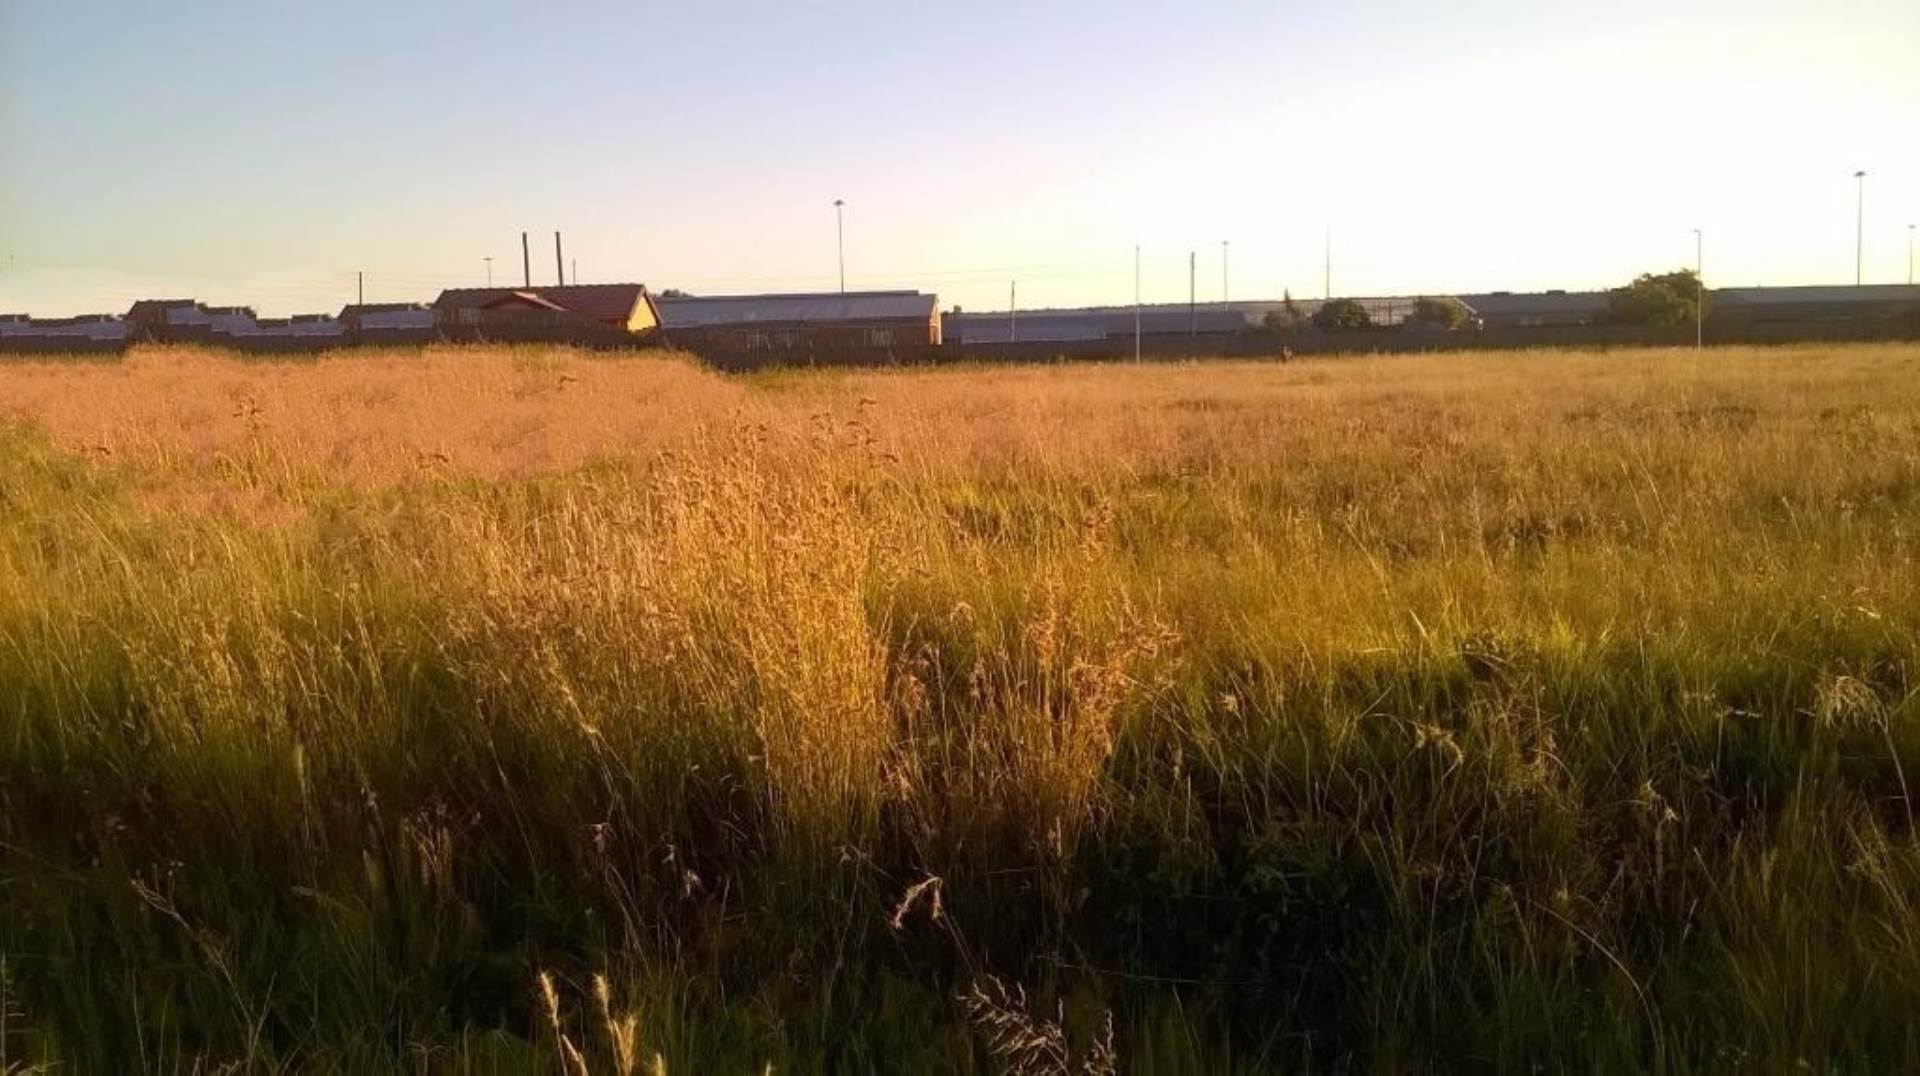 Vacant Land Residential For Sale In Welgedacht